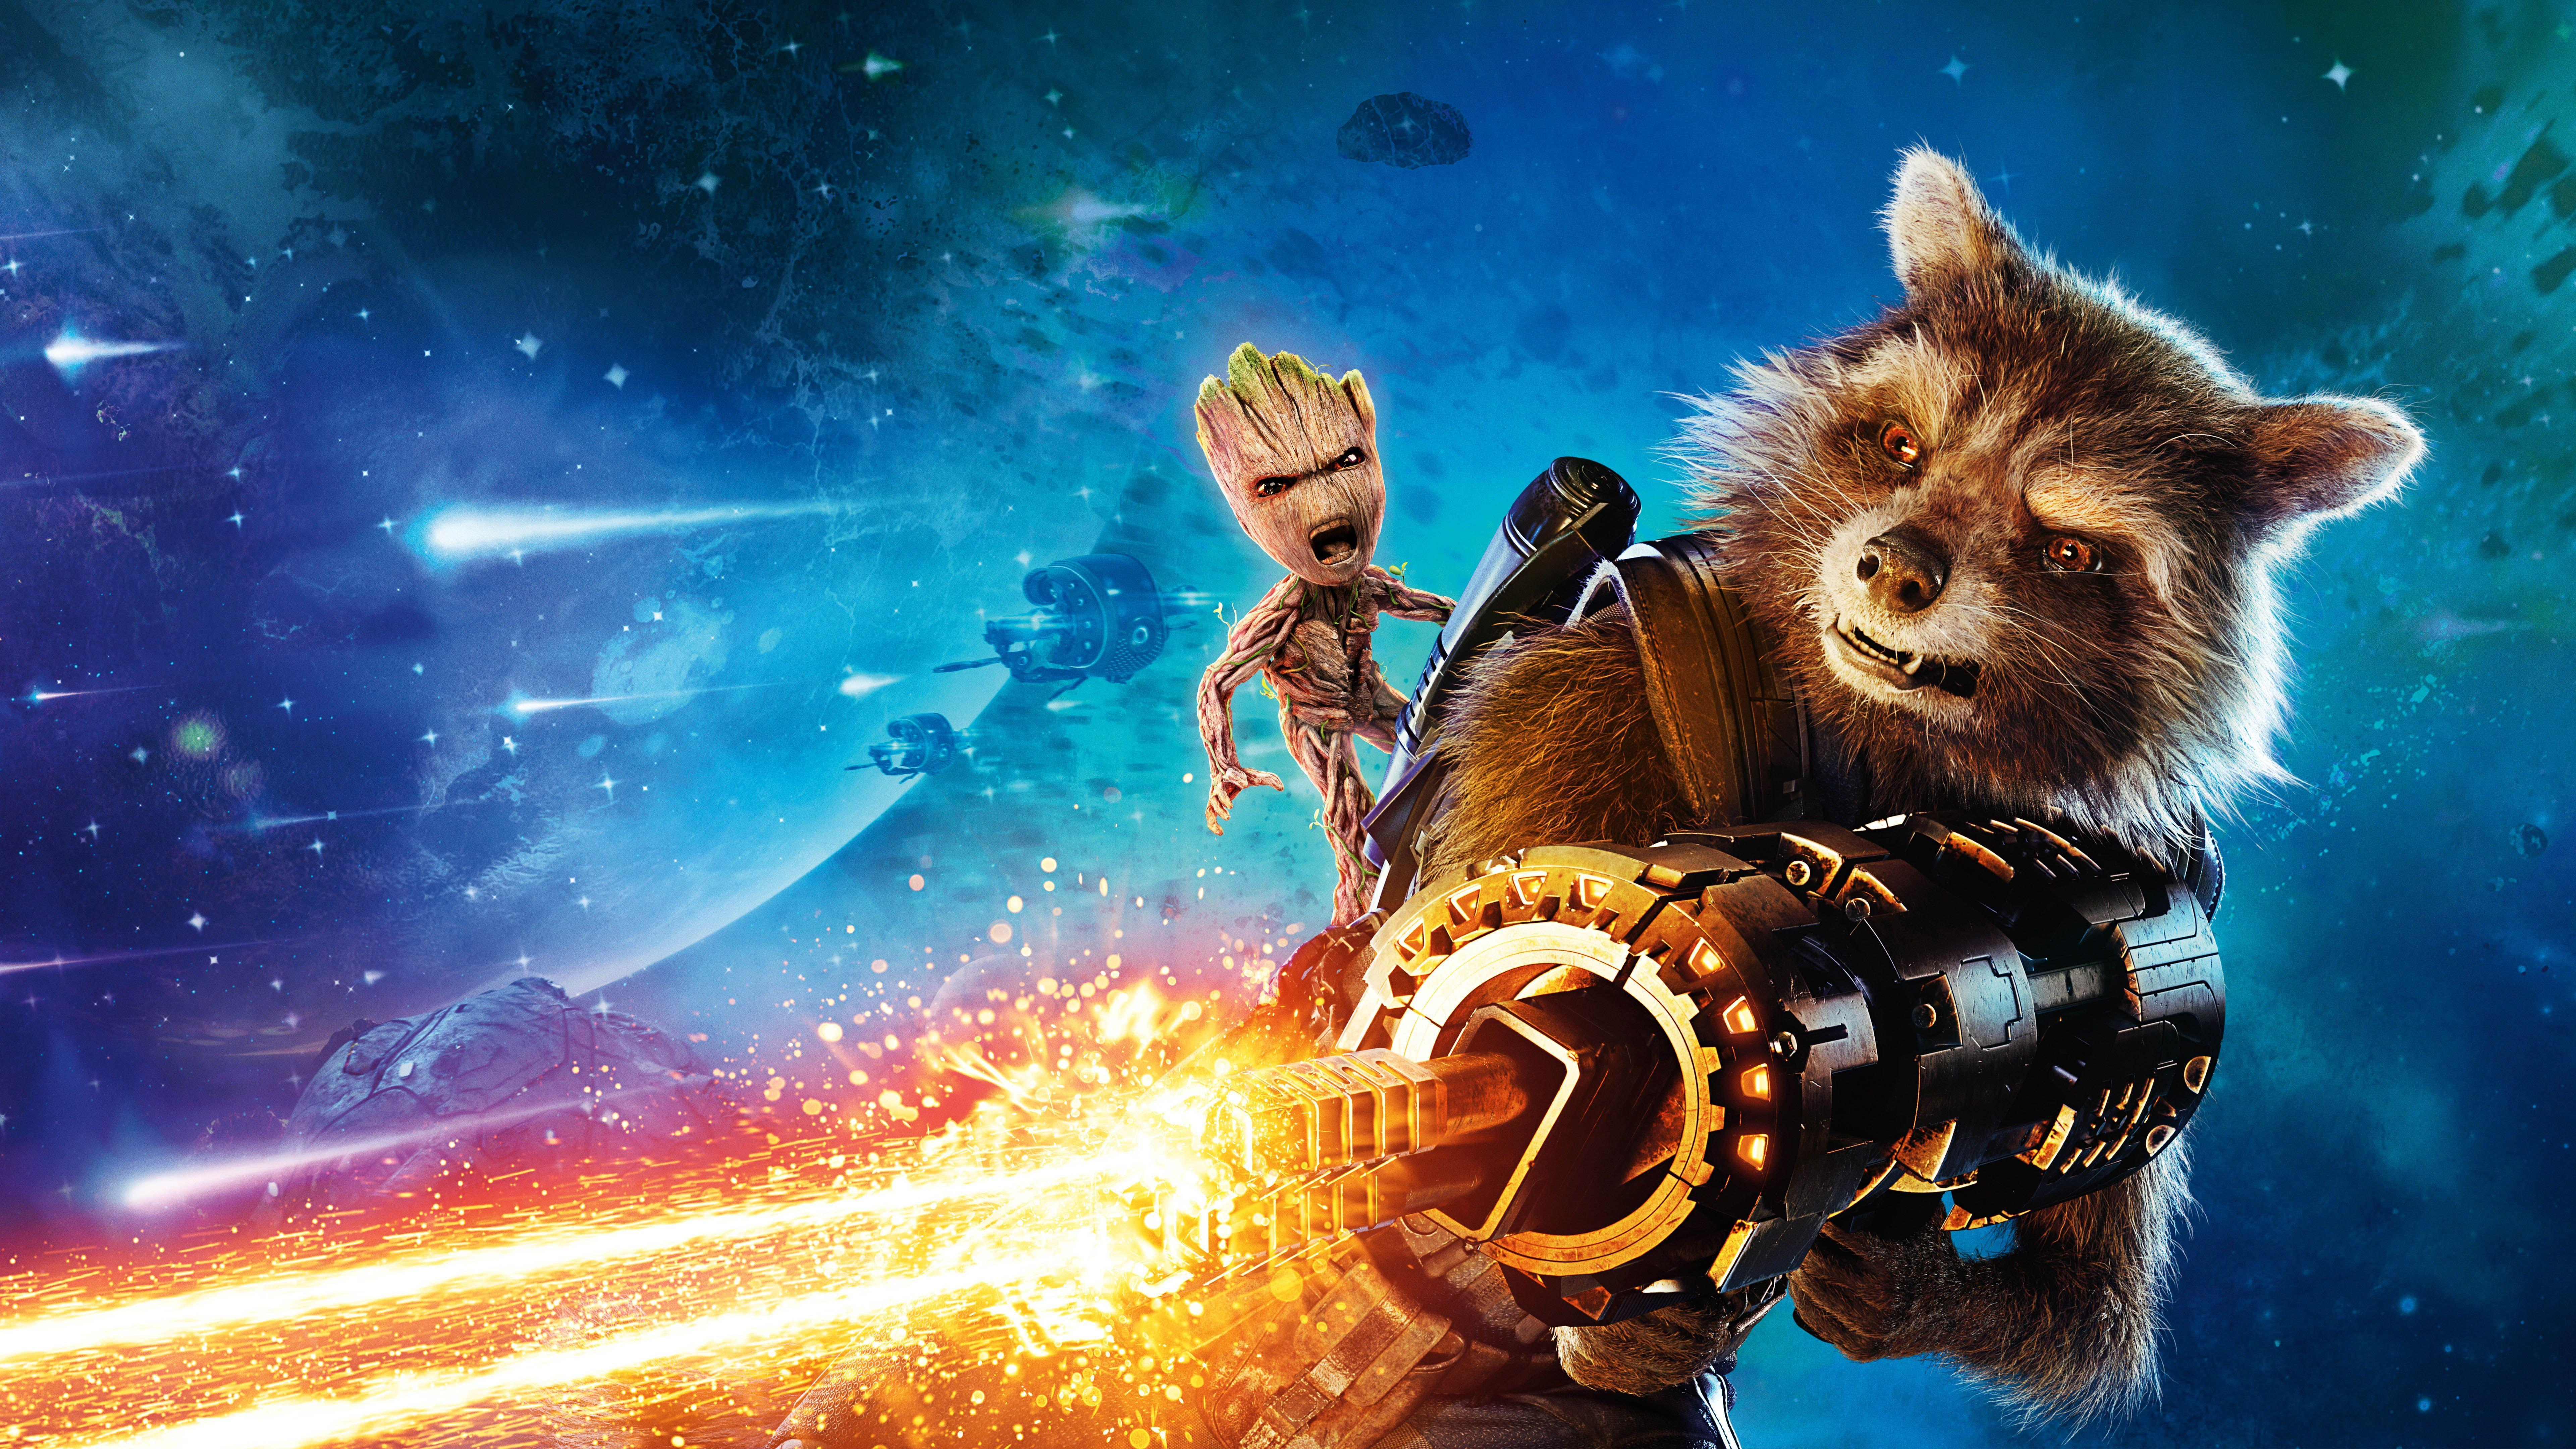 Guardians Of The Galaxy Vol. 2 Wallpapers - Wallpaper Cave